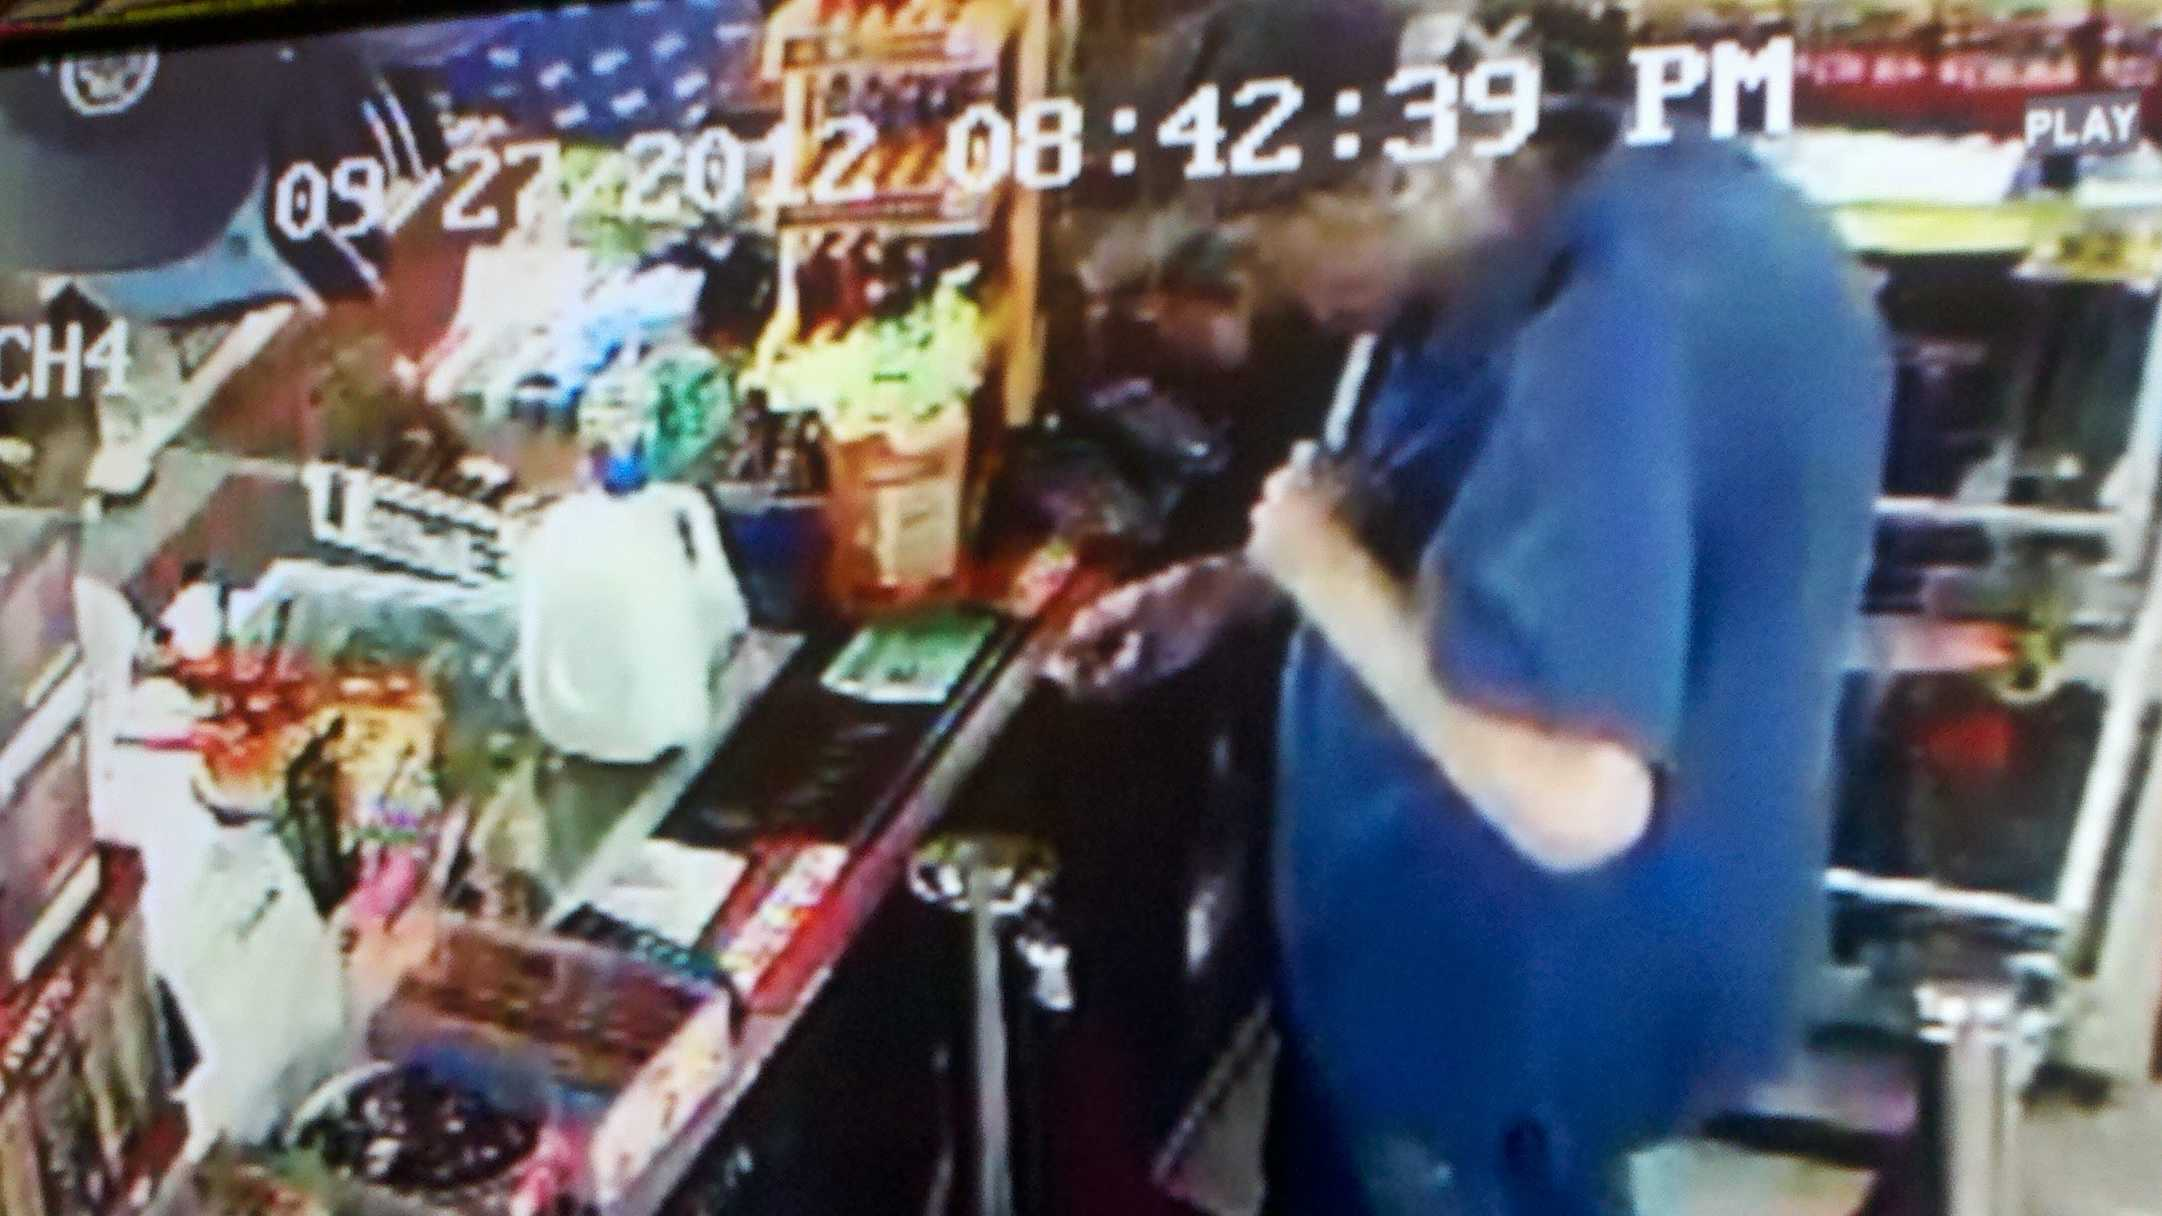 A surveillance camera captured this image of Philip Jensen buying milk minutes before he was hit and killed along Fulton avenue.